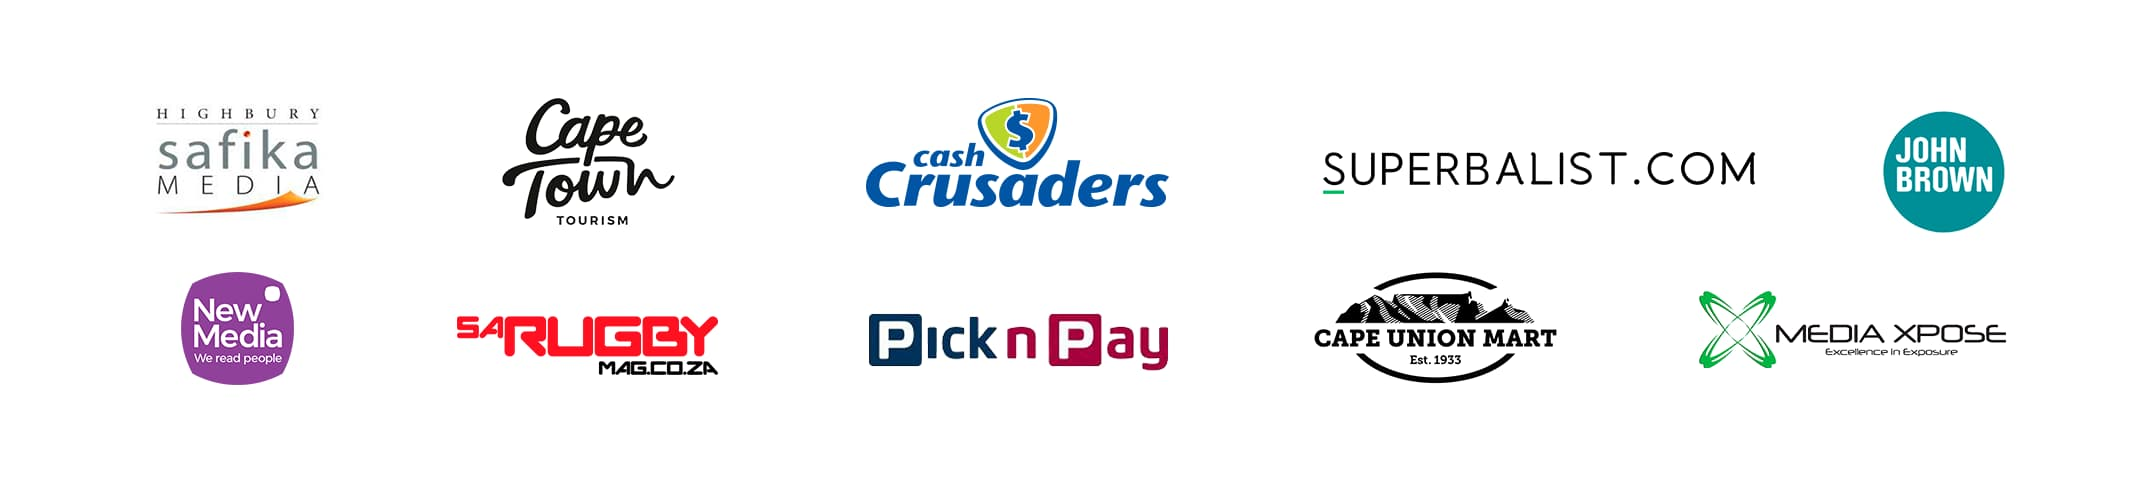 Image of client logos